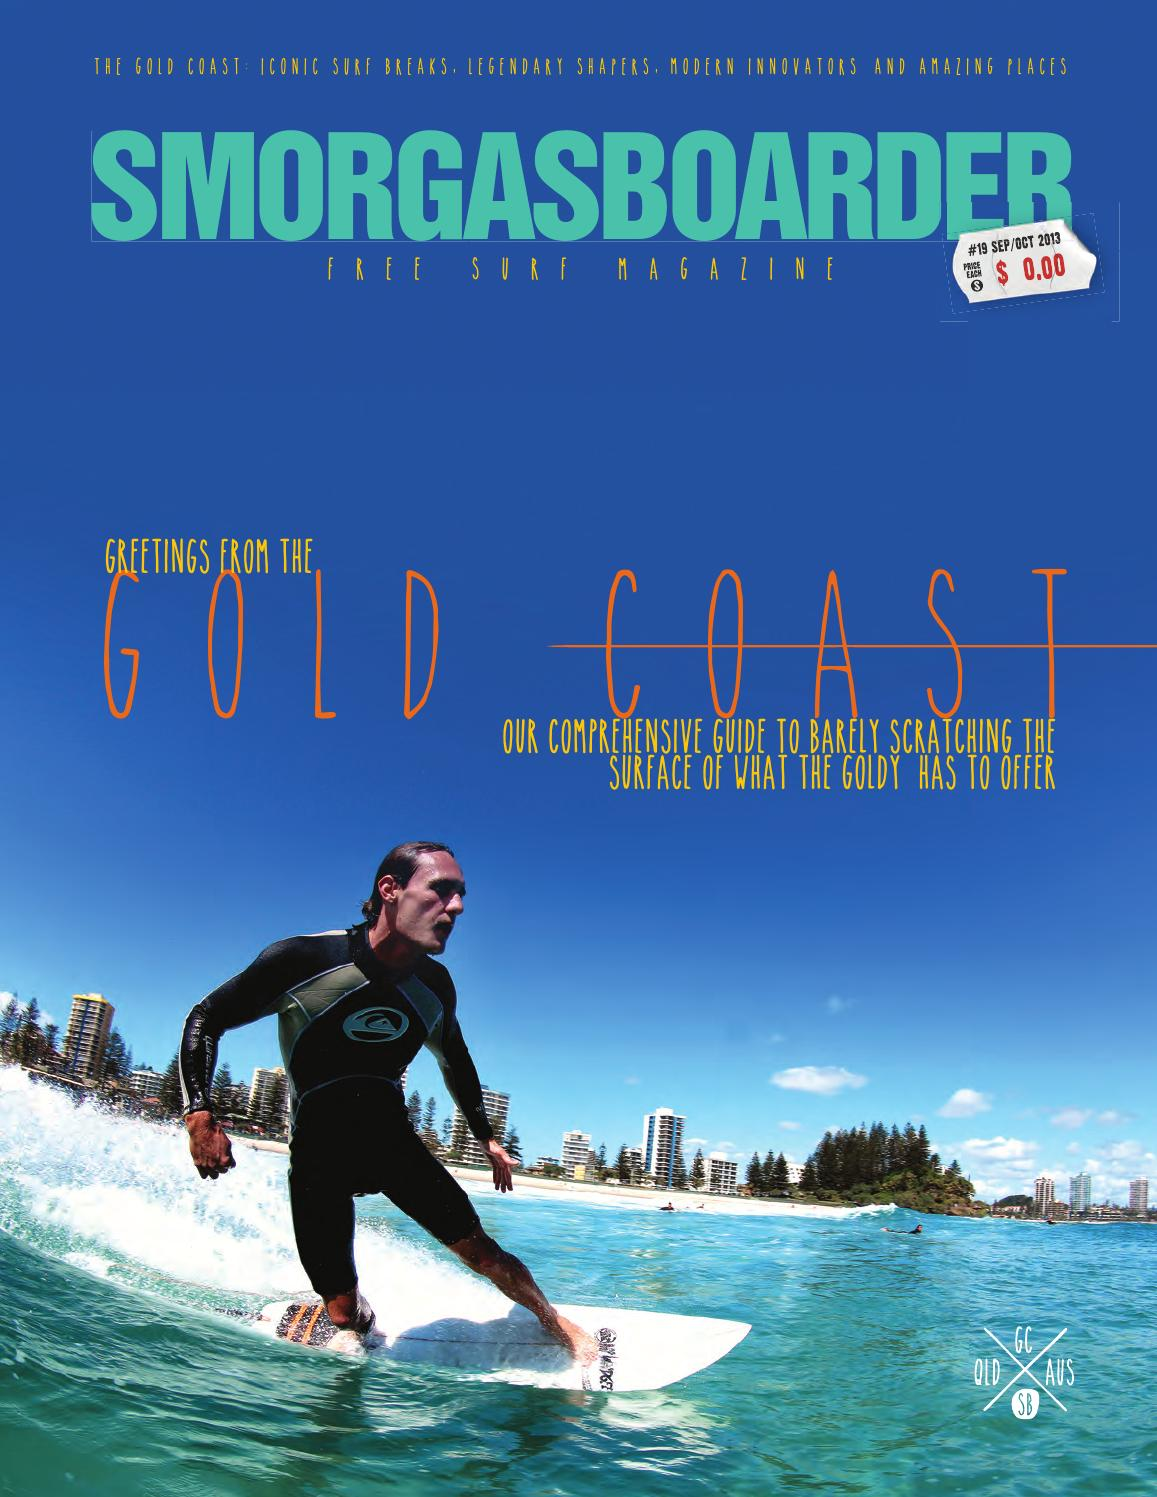 Smorgasboarder September 2013 By Smorgasboarder Magazine Issuu